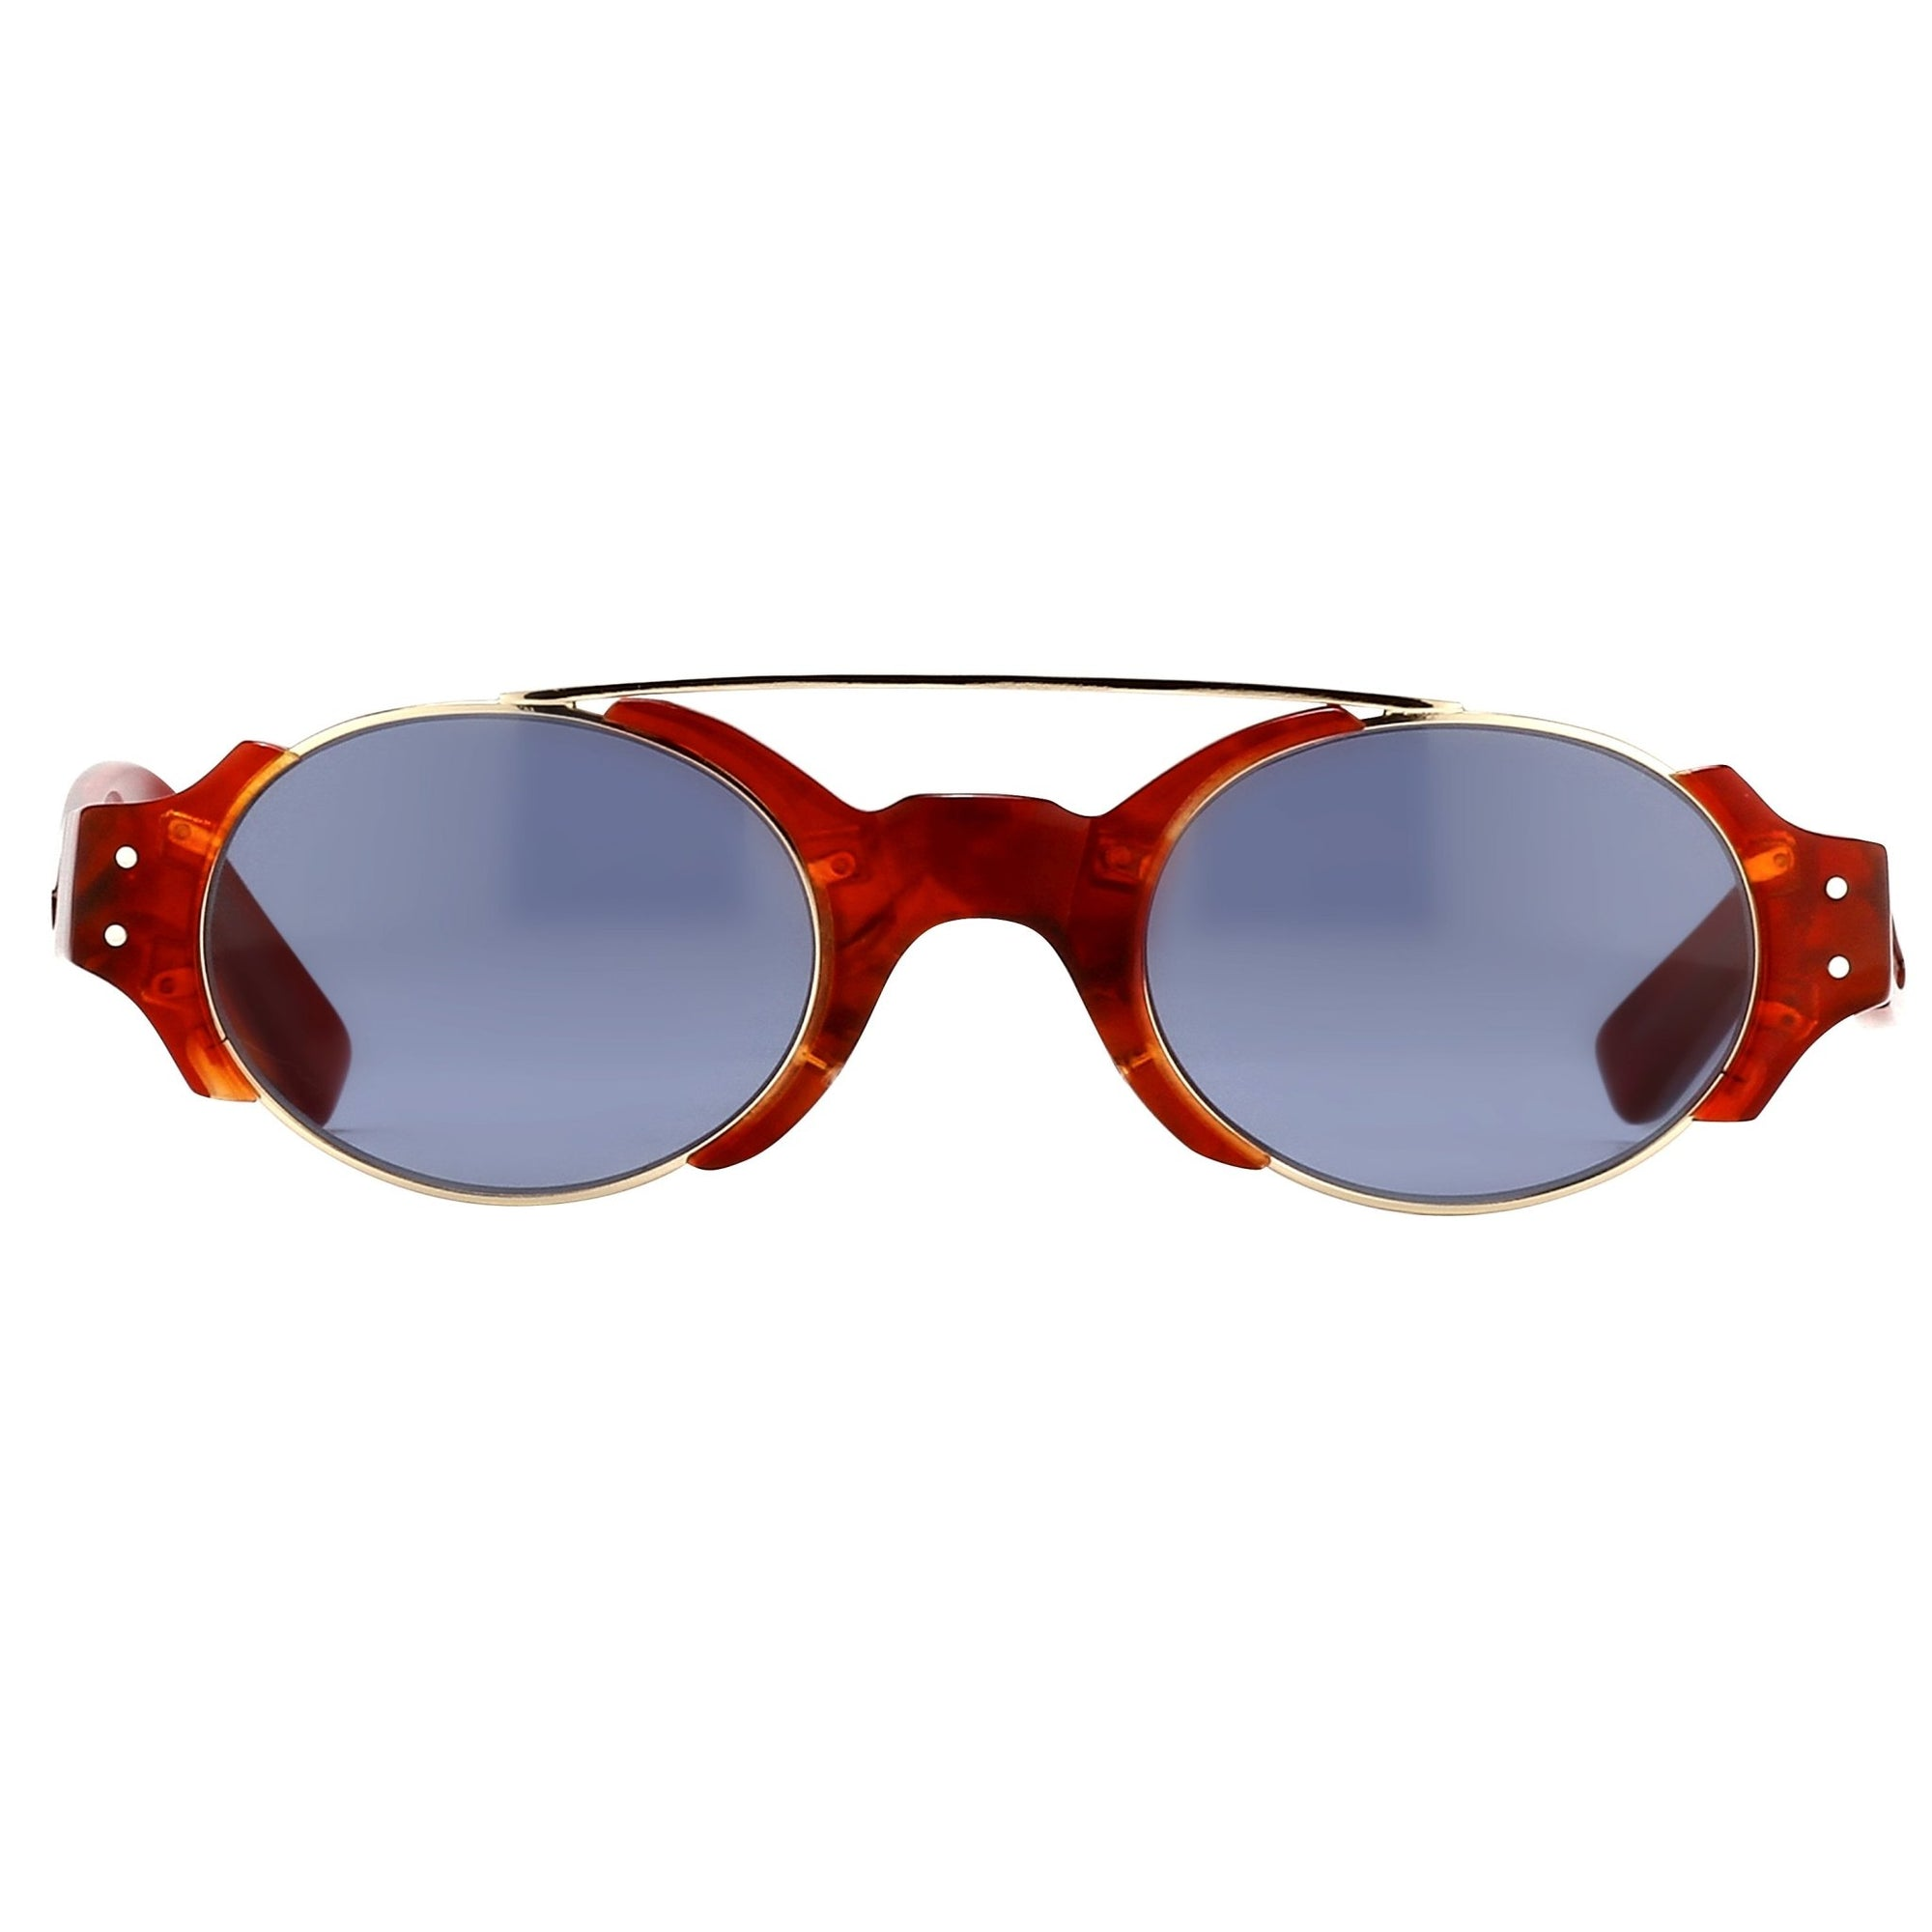 Erdem Women Sunglasses Red Marble Light Gold with Blue Lenses Category 3 EDM8C4SUN - Watches & Crystals